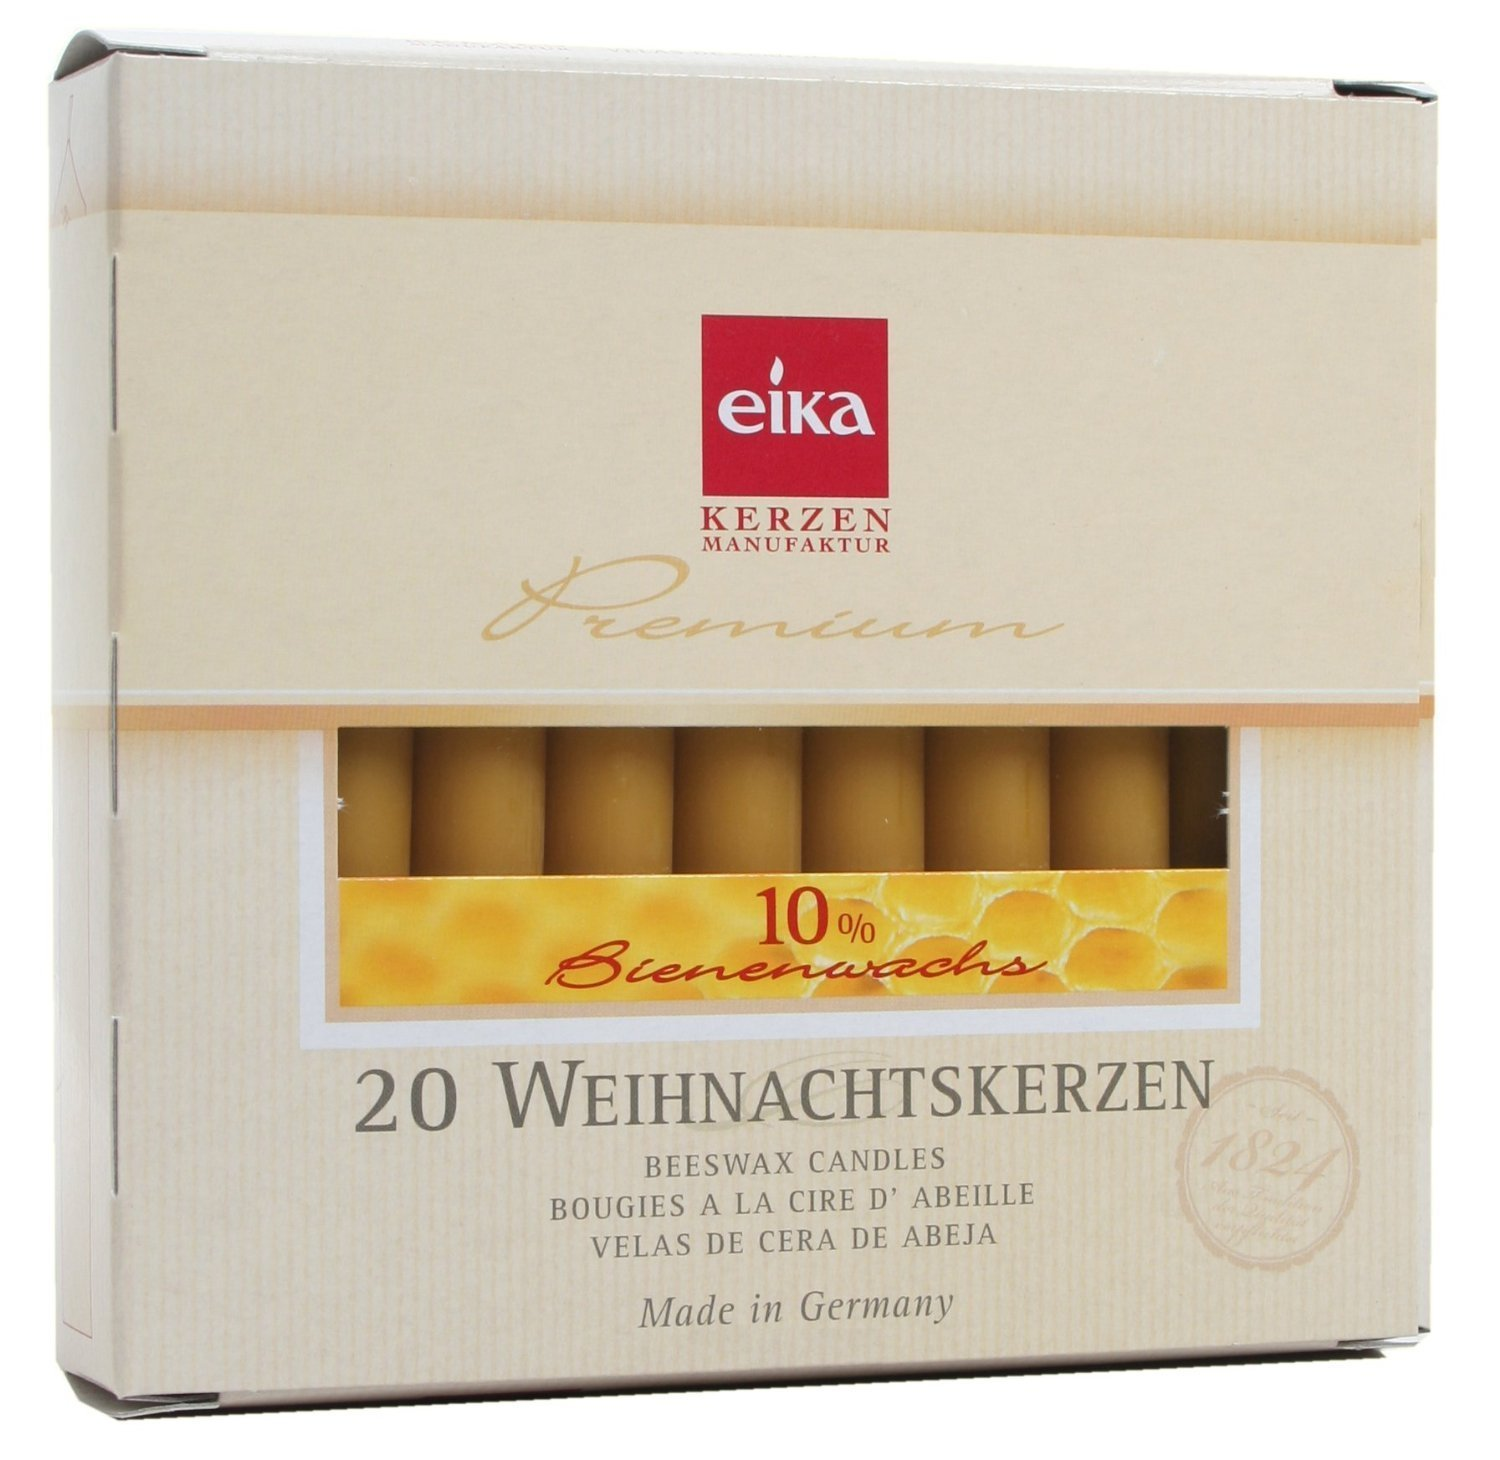 Eika Box of 20 Finest Beeswax Tree Candles Honey Yellow 10 Percent Beeswax High 10.5 Centimeters Made in Germany